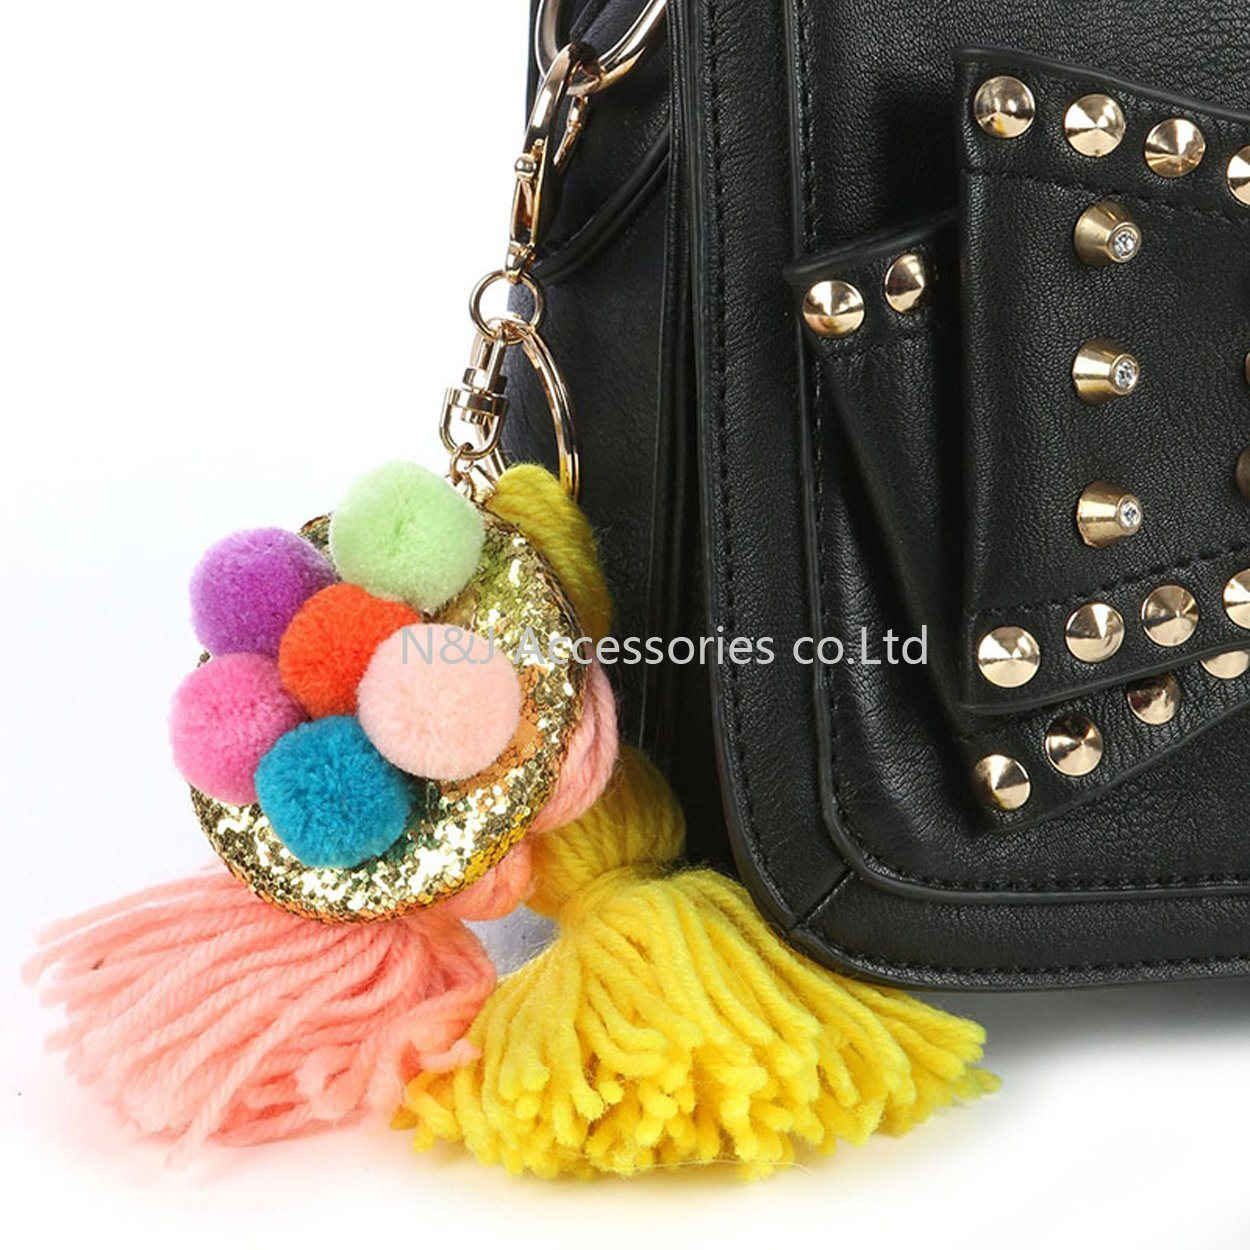 Hot Key Chain Poms Pendant Fashion Keychains Tassels Keyrings Accessories Women Bag Charm Trinket